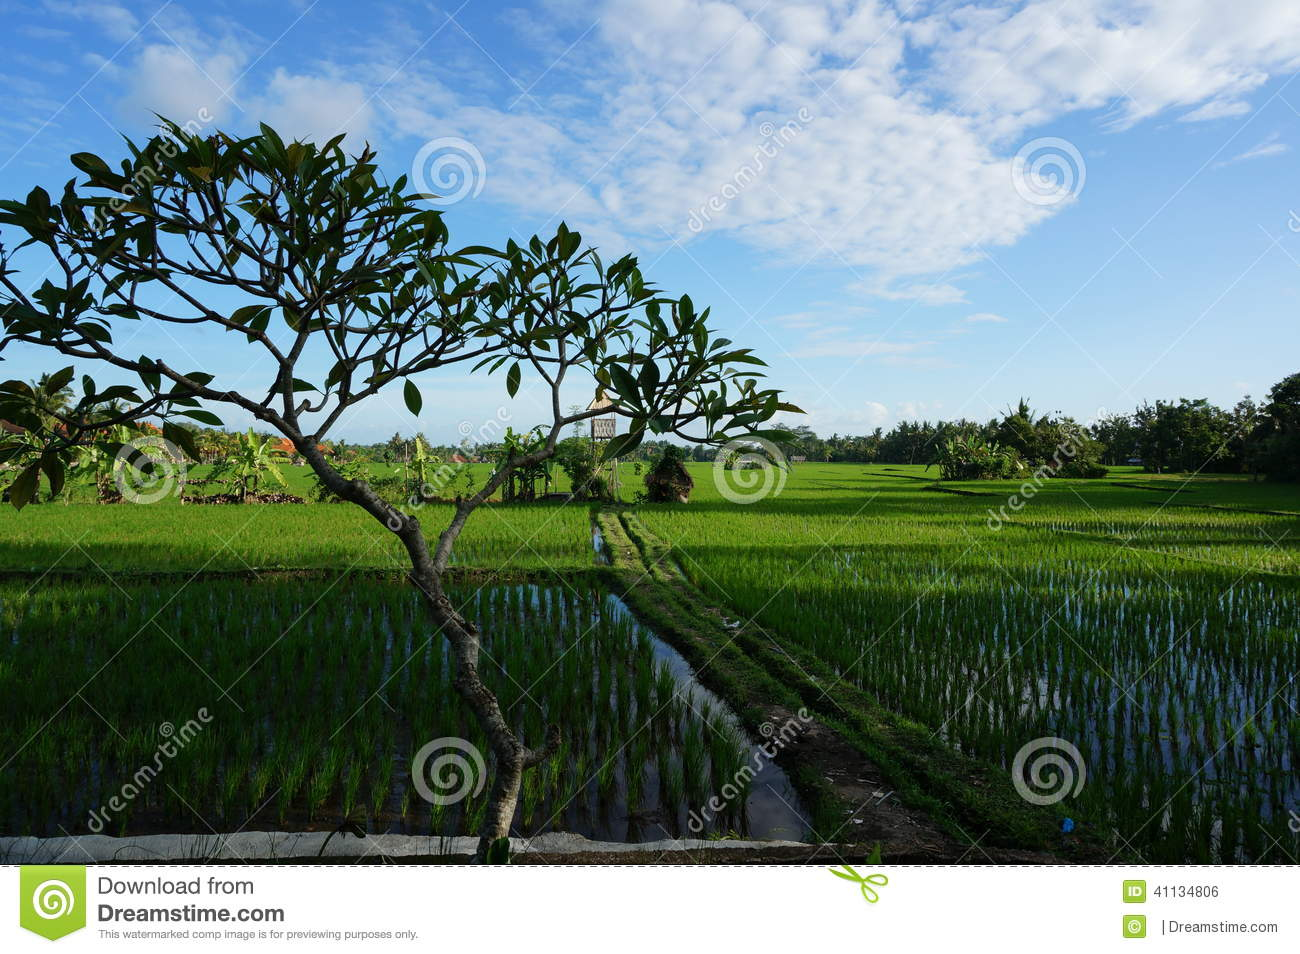 Bali rice fields and tree